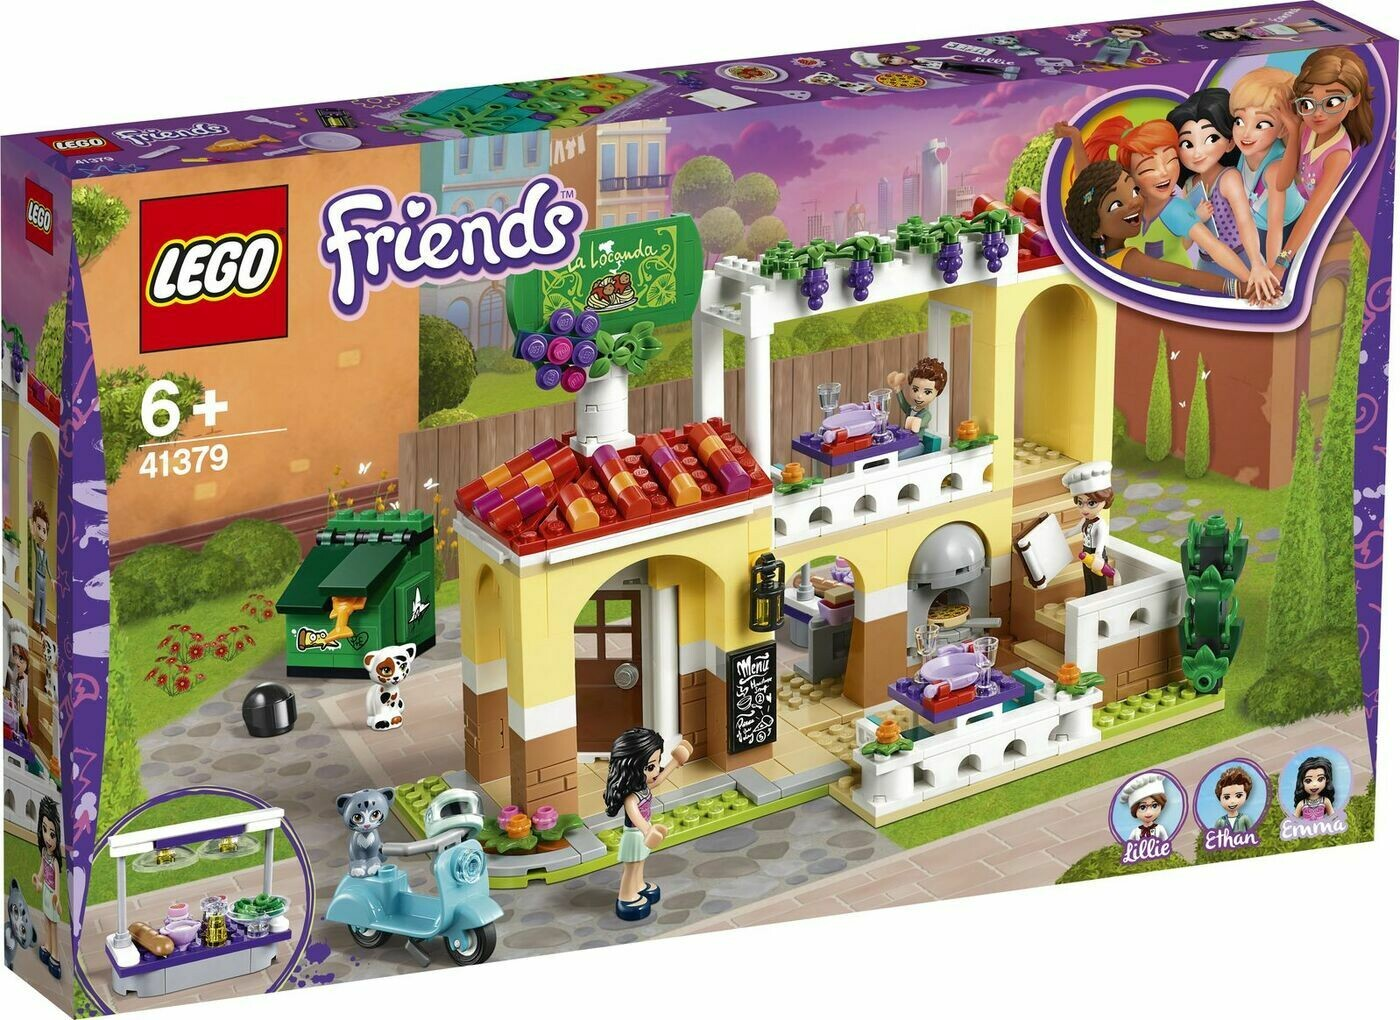 Конструктор LEGO Friends 41379 Ресторан Хартлейк Сити